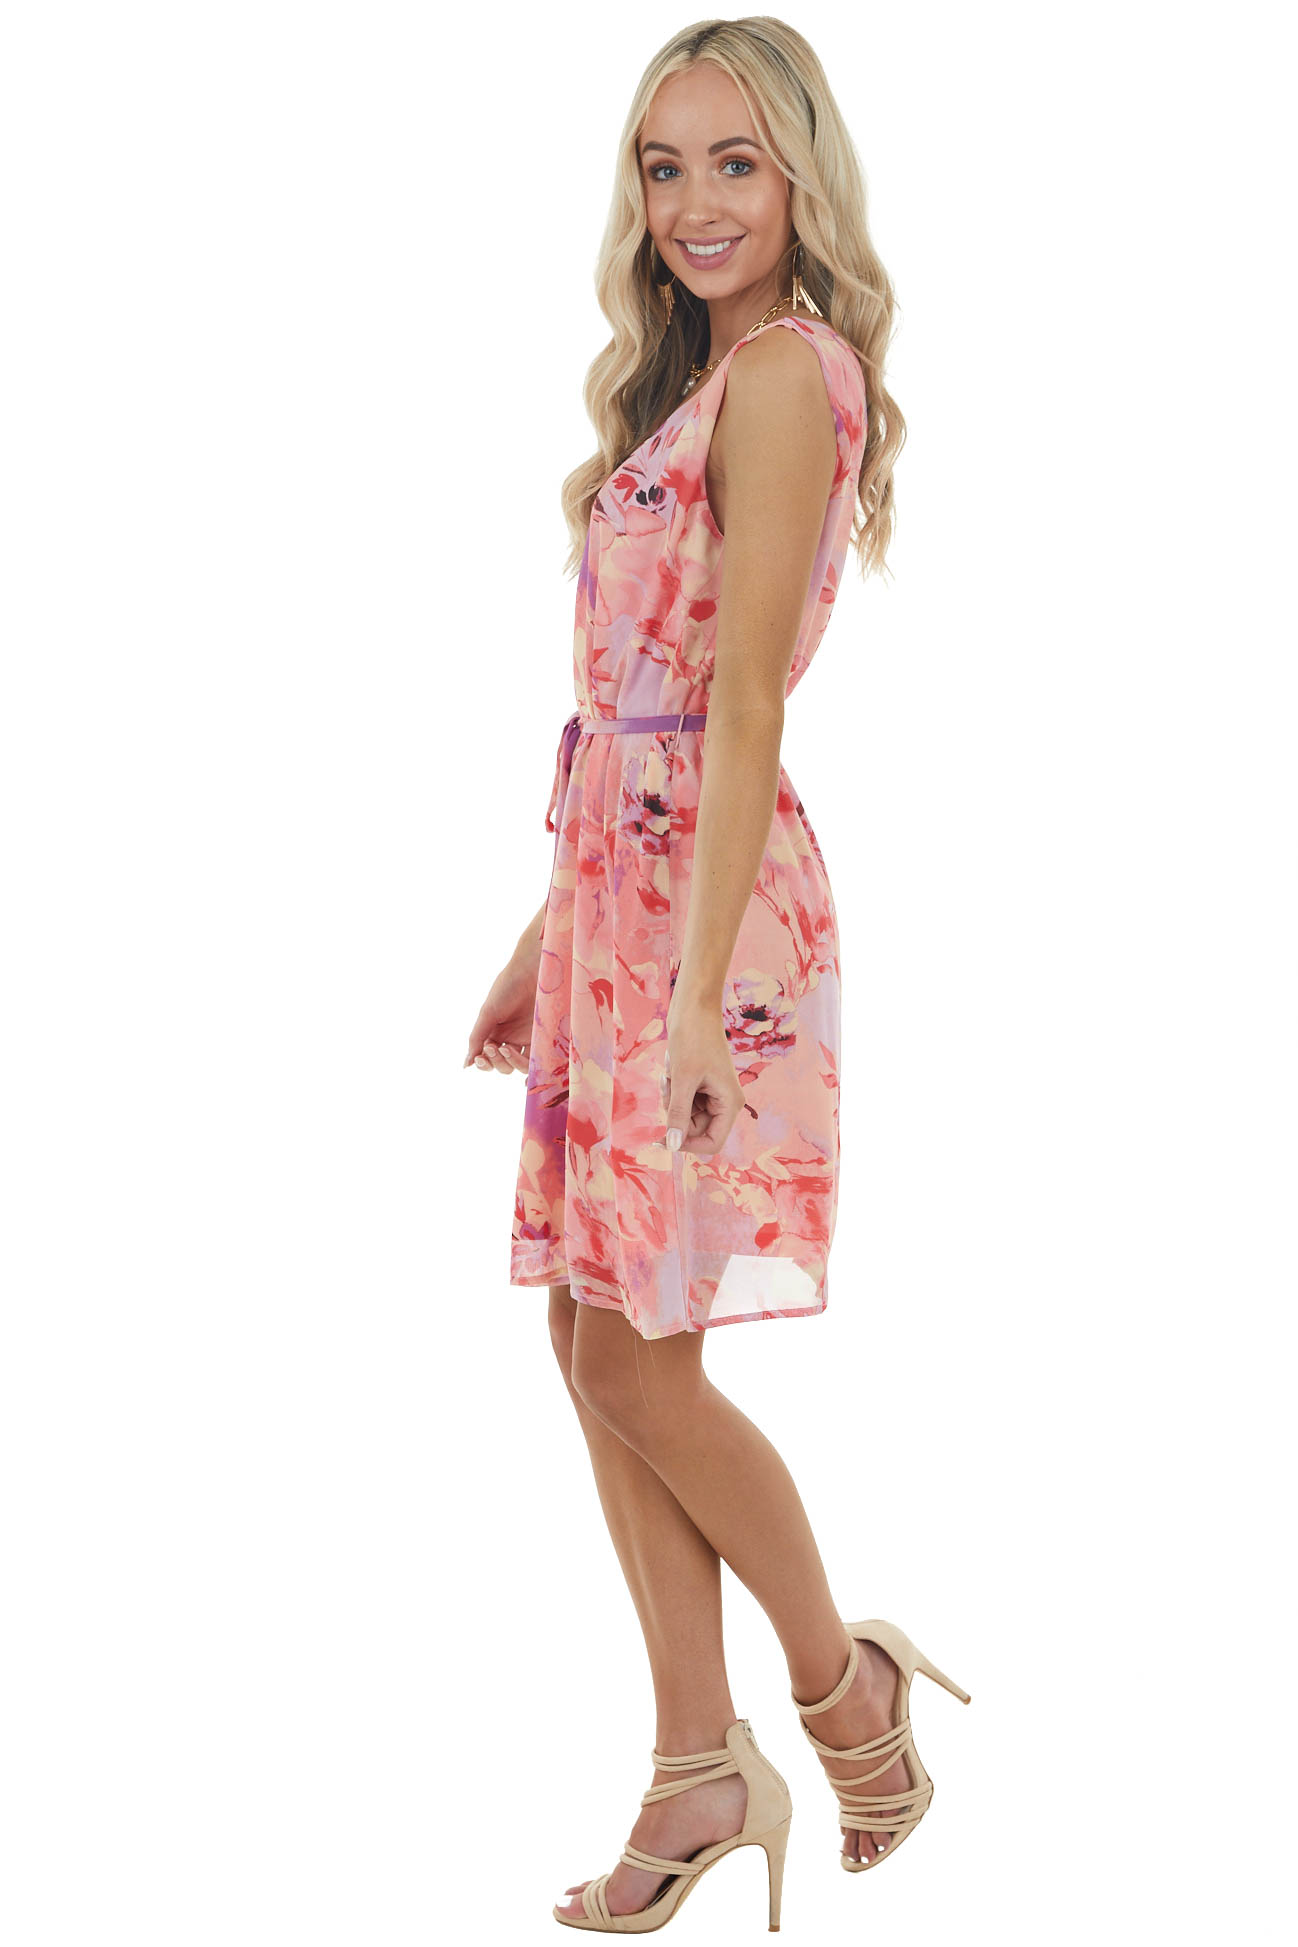 Coral Abstract Floral Print Sleeveless V Neck Short Dress